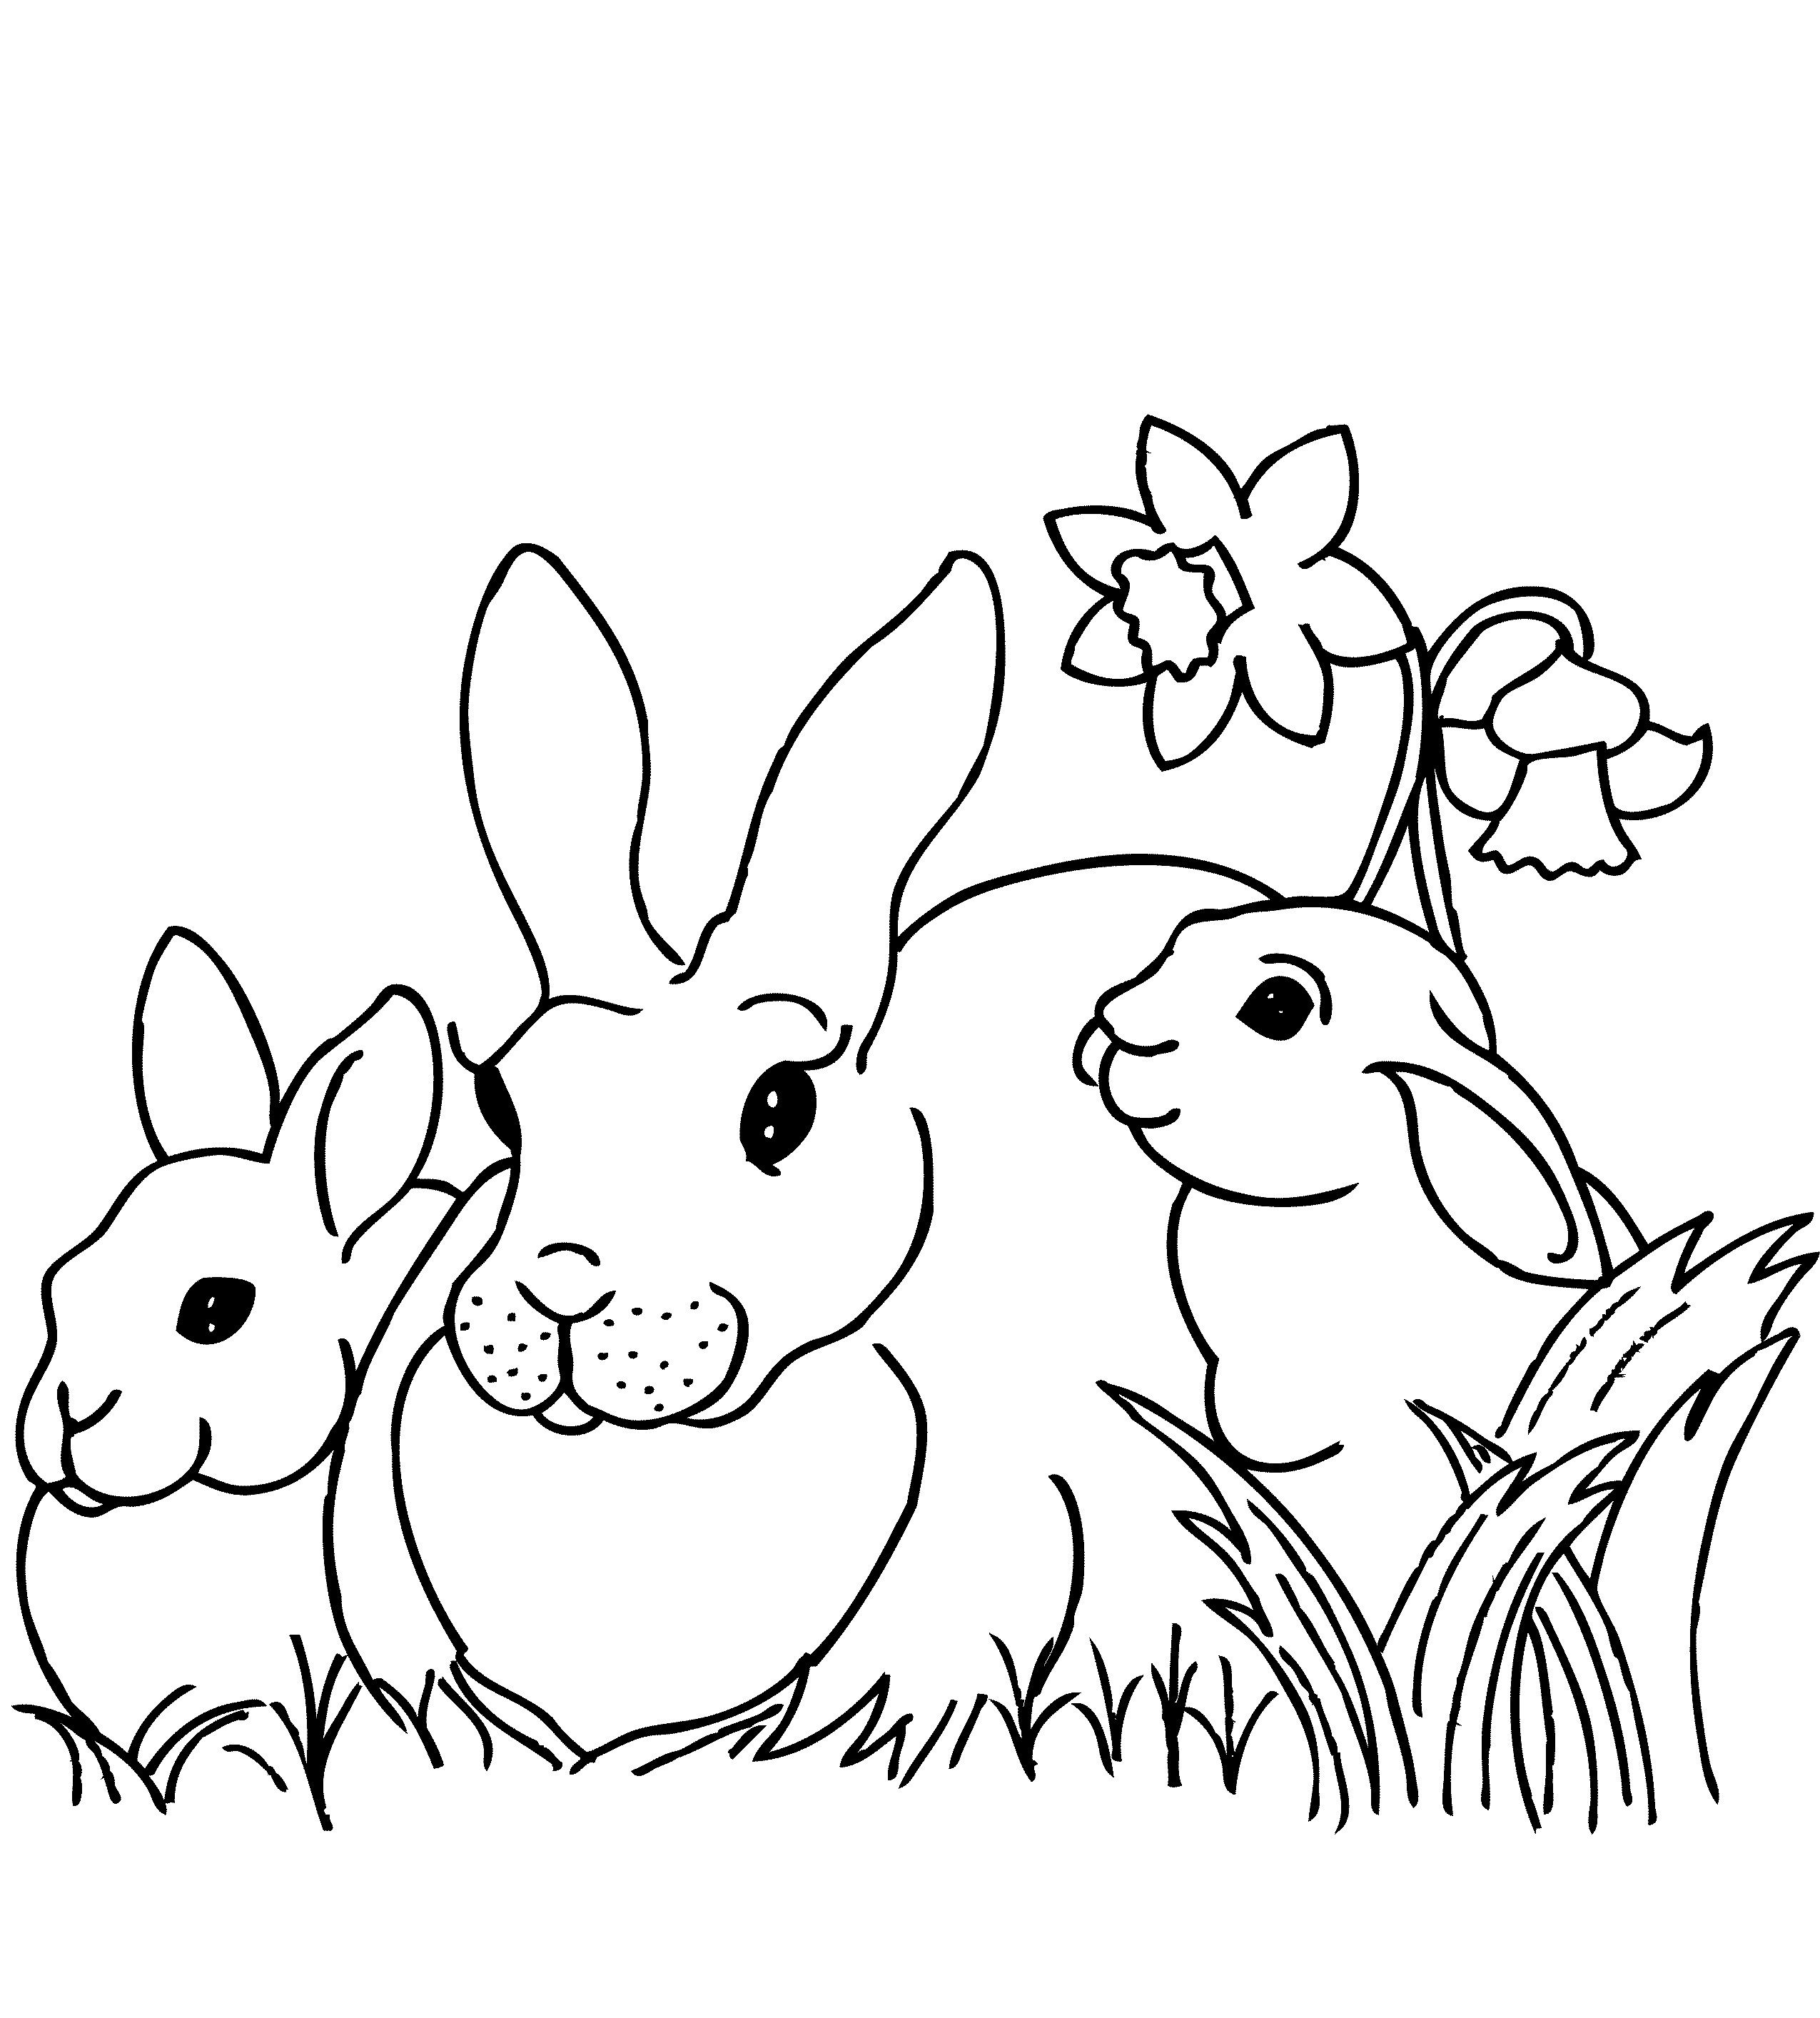 rabbits Adult coloring pages | Animal Colouring Pages | Pinterest